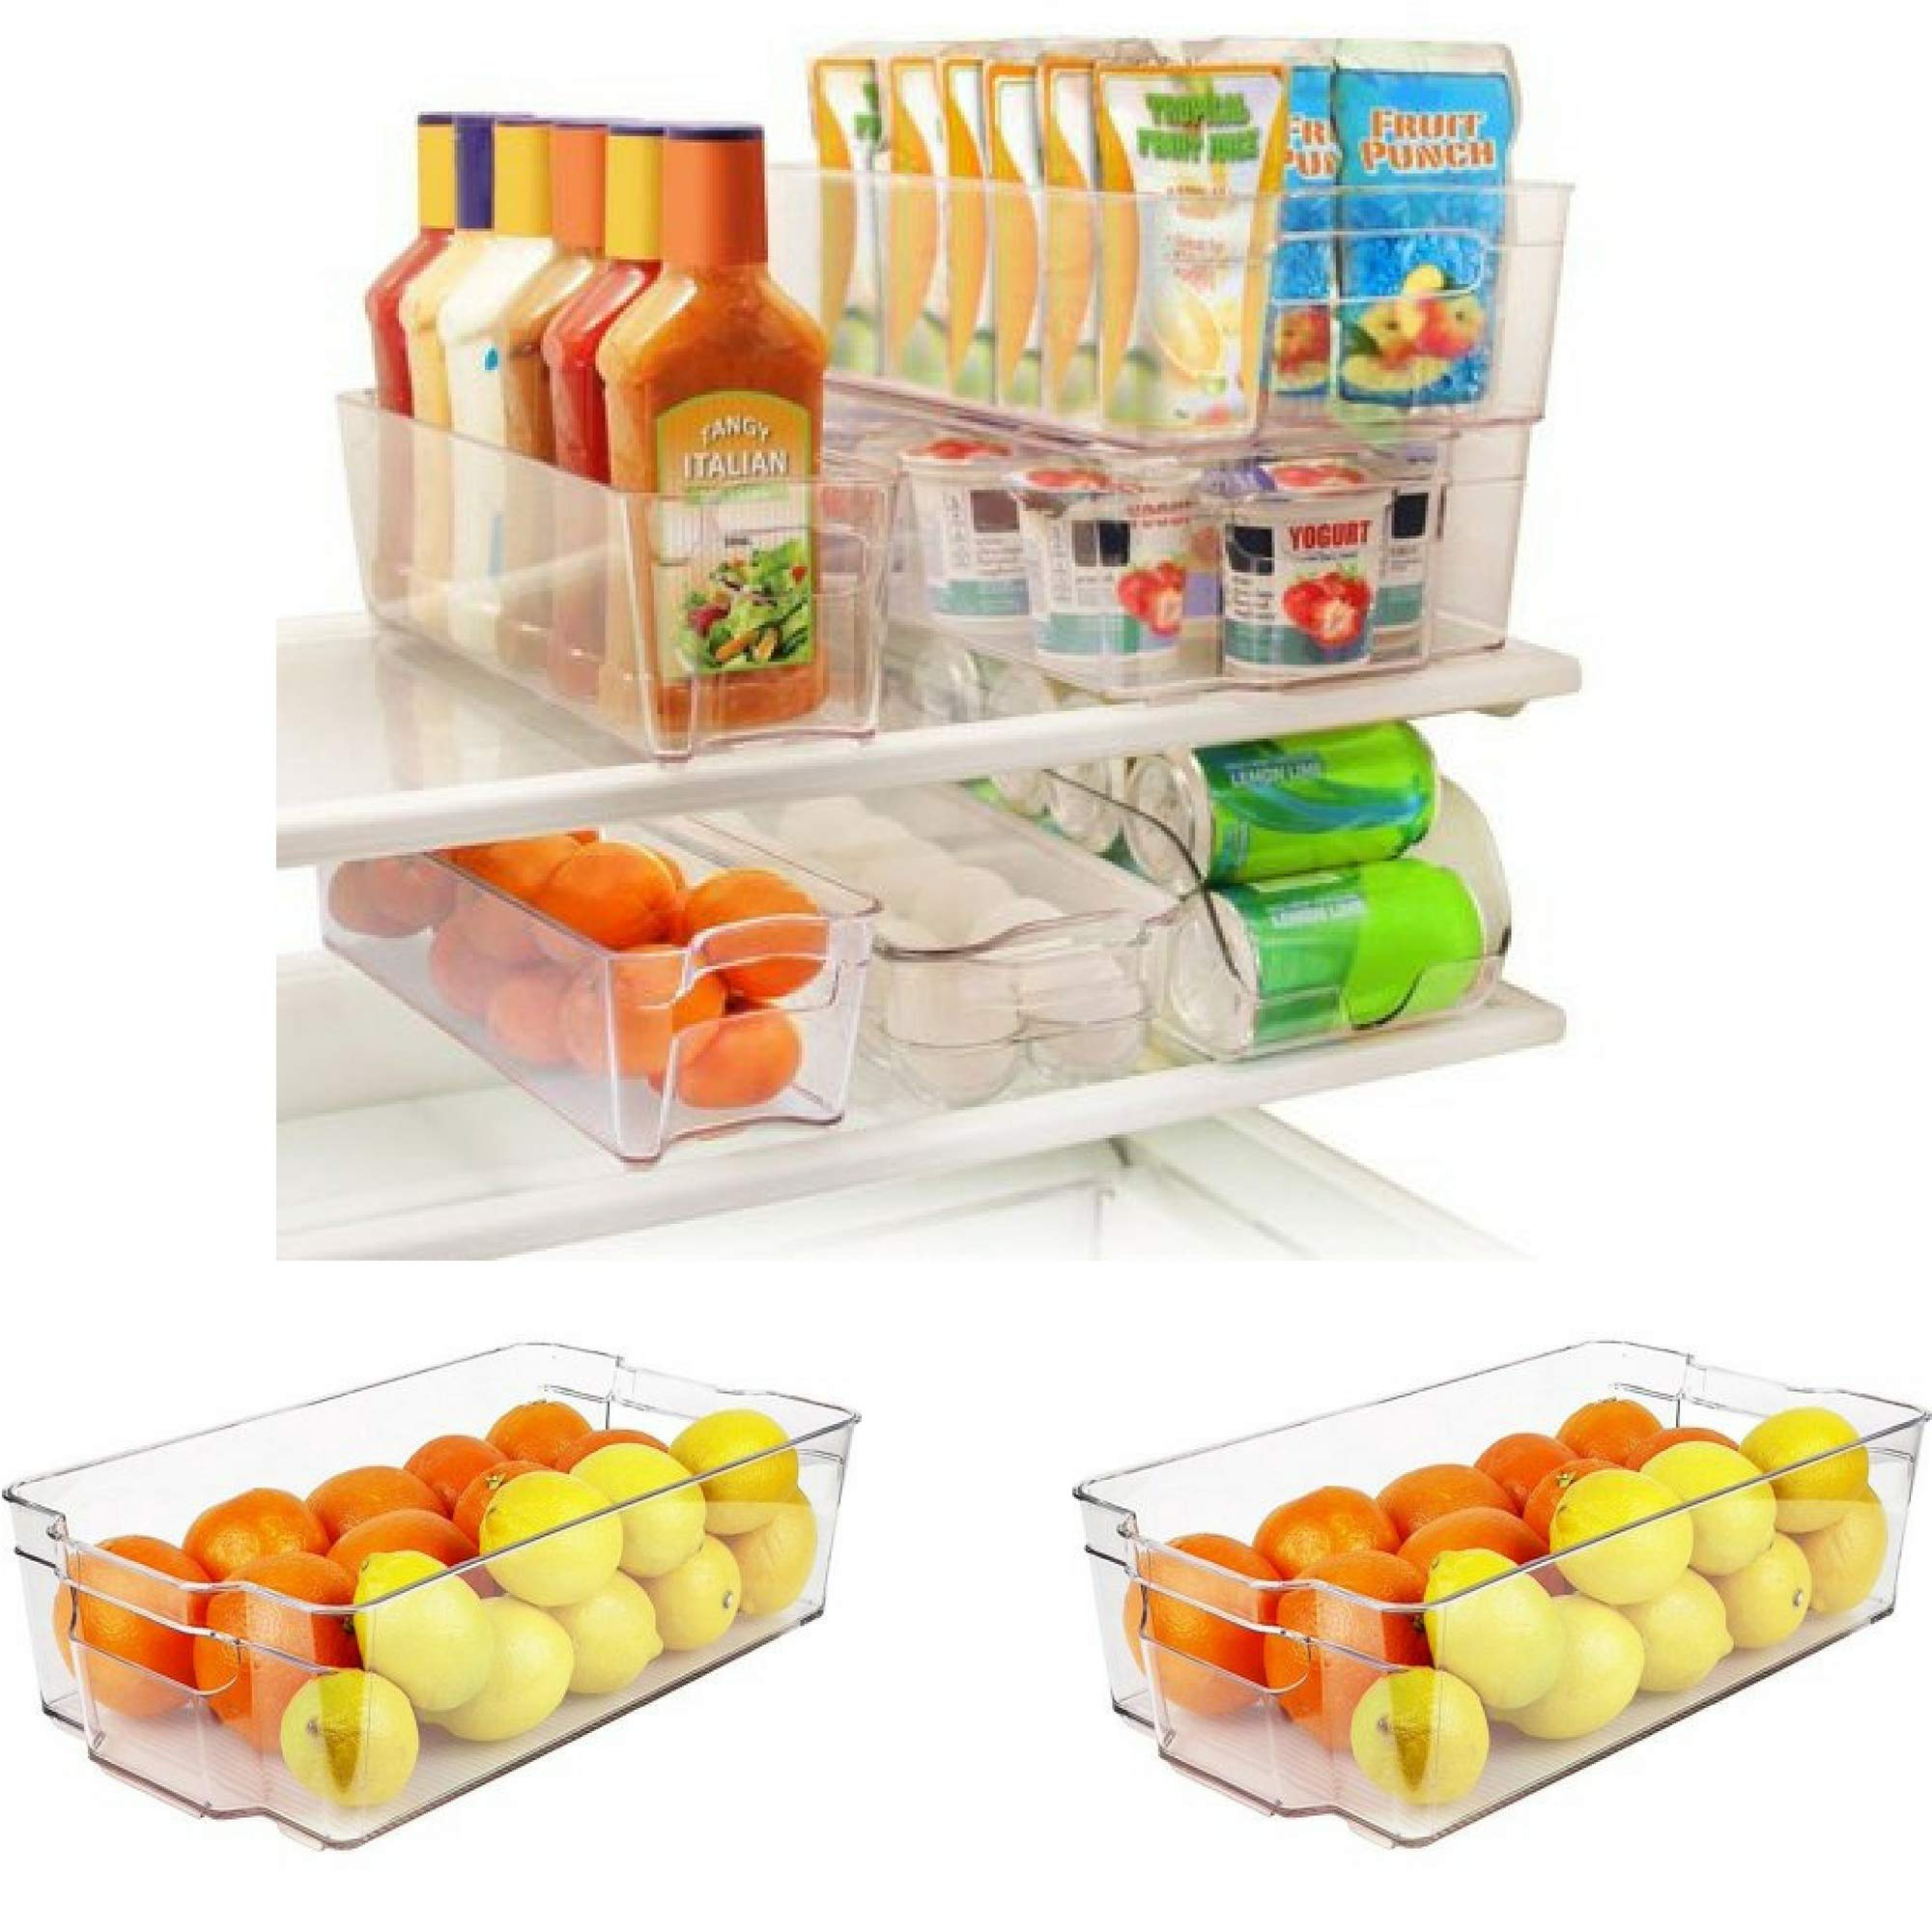 Greenco 8 Piece Refrigerator And Freezer Stackable Clear Storage Organizer Bins With Handles